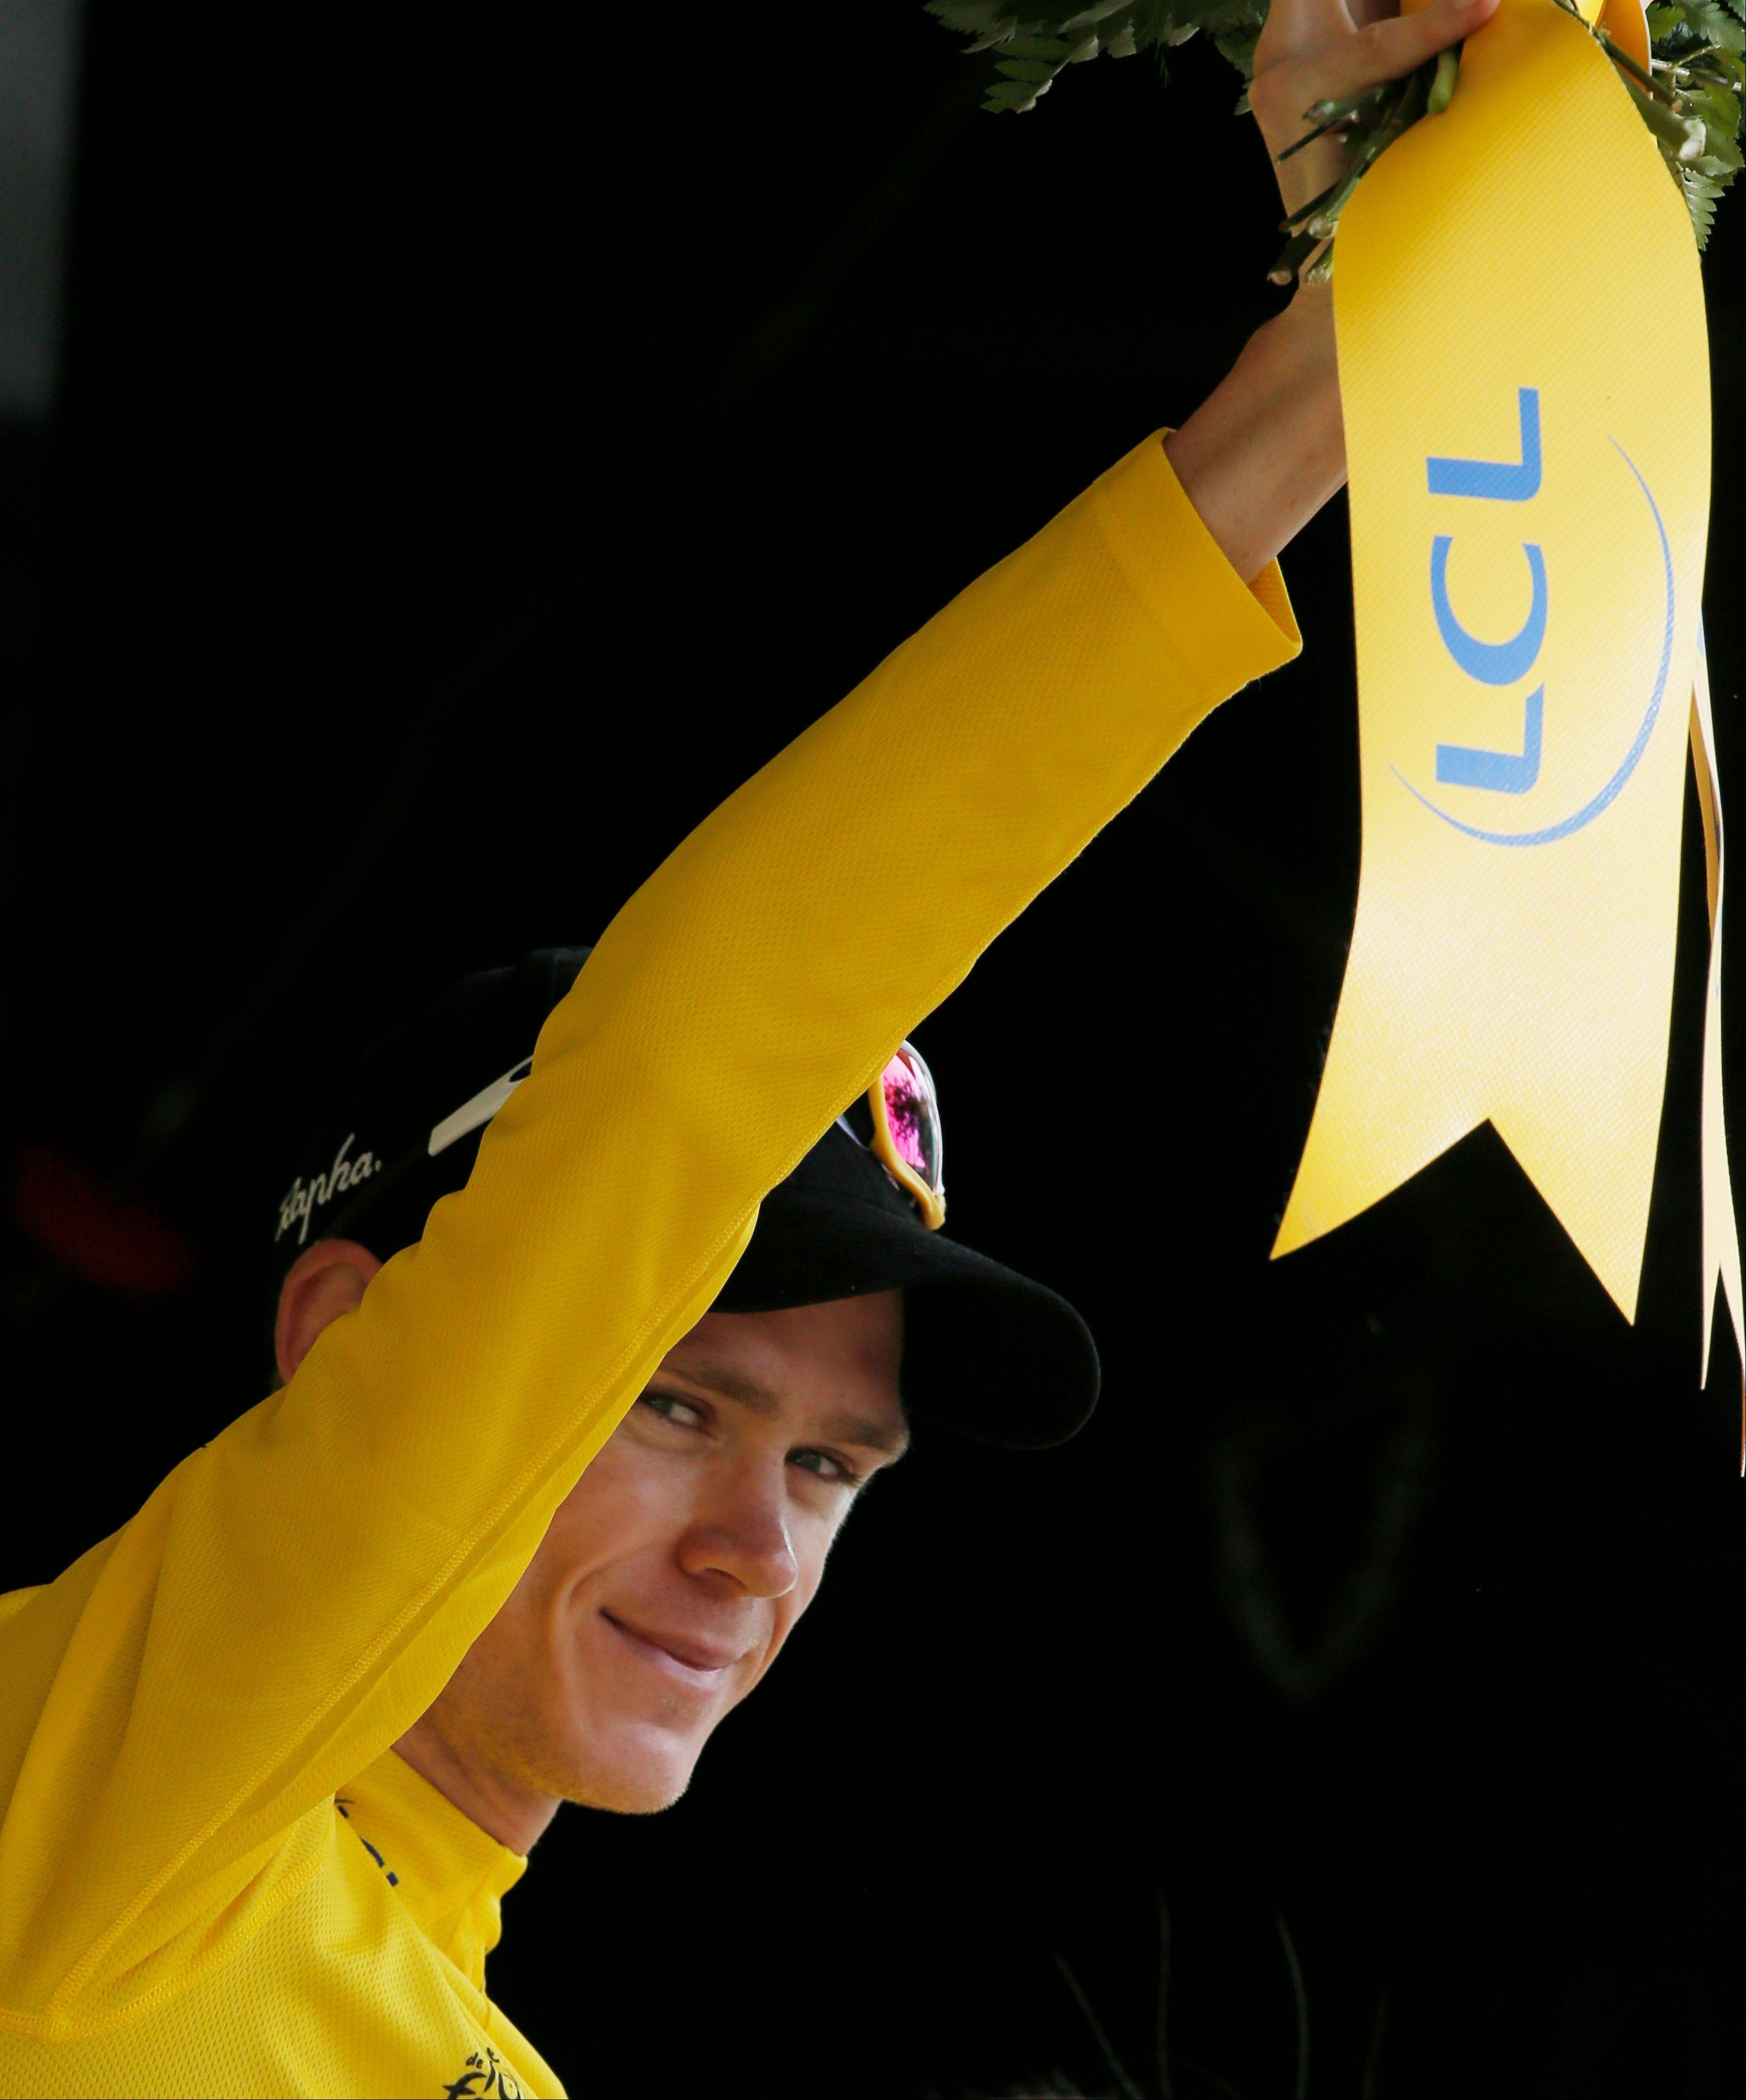 Christopher Froome of Britain, wearing the overall leader's yellow jersey, celebrates on the podium of the twelfth stage of the Tour de France cycling race over 218 kilometers (136.2 miles) with start in in Fougeres and finish in Tours, western France, Thursday July 11 2013. (AP Photo/Laurent Rebours)